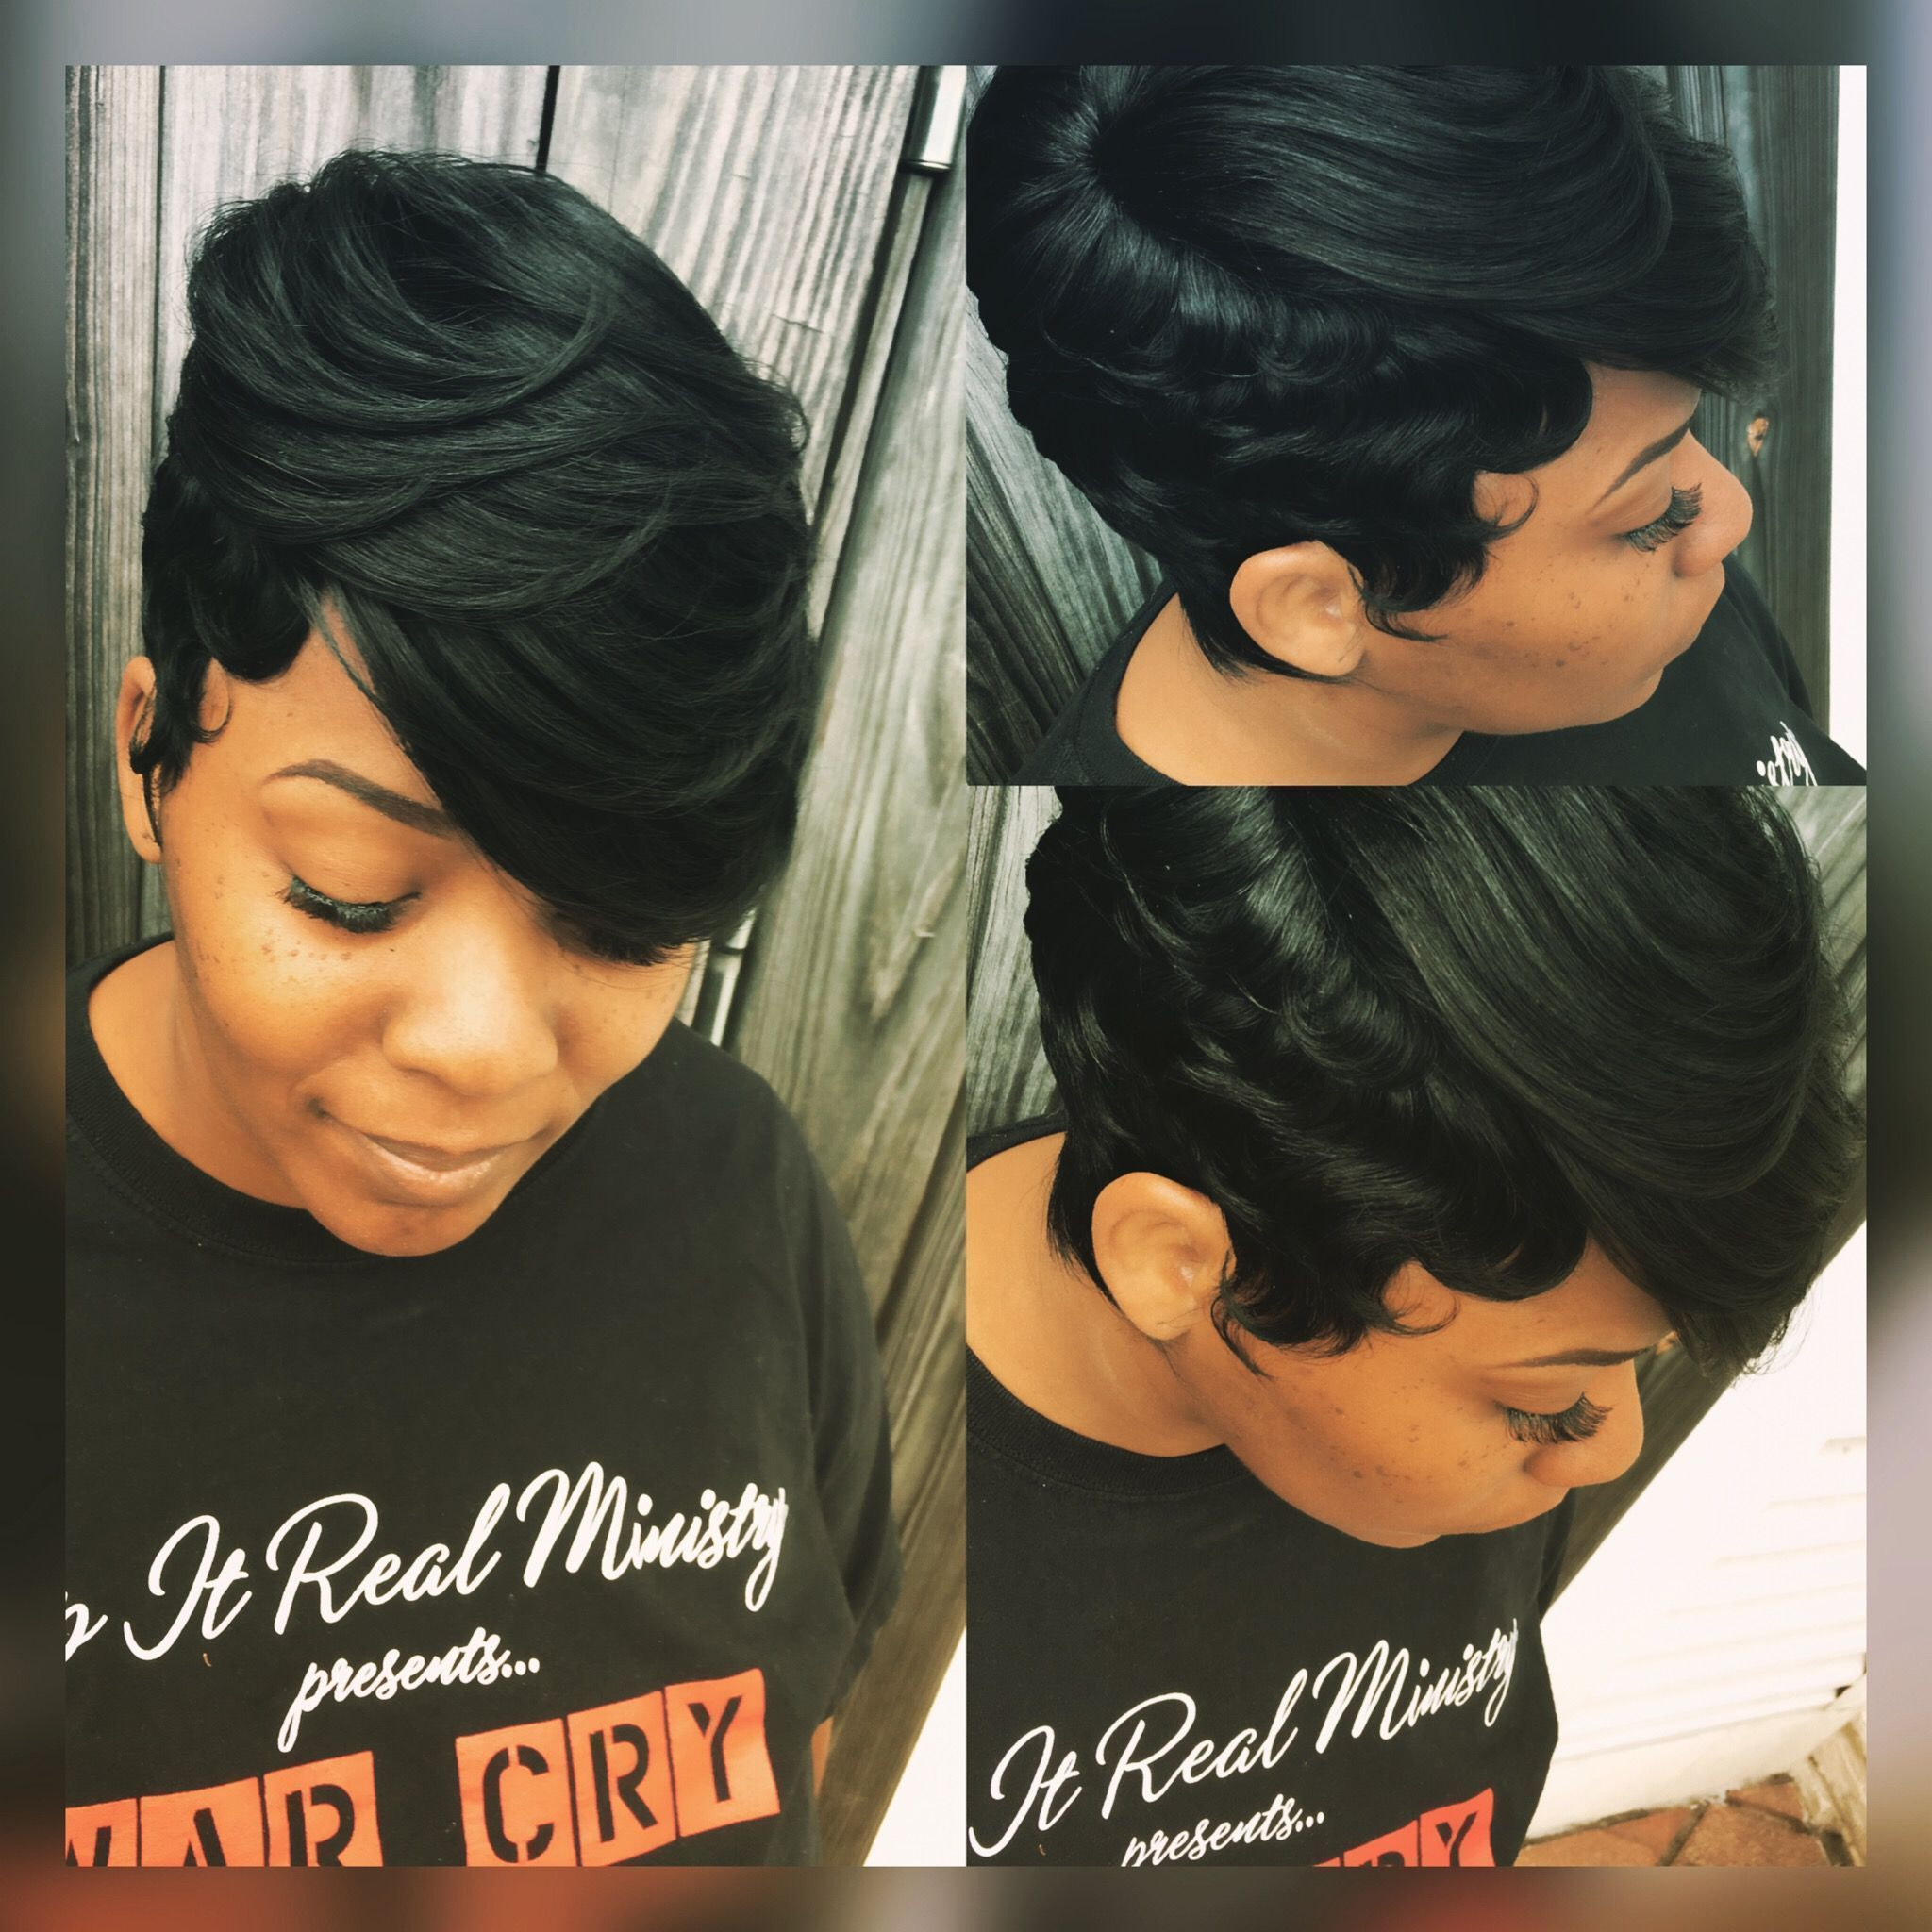 27 Piece Quickweave Black Hairstyles Black Hair Short Hair Short Hairstyles 27piecehairstyles 27 Pi In 2020 Quick Weave Hairstyles Short Wavy Hair Hot Hair Styles